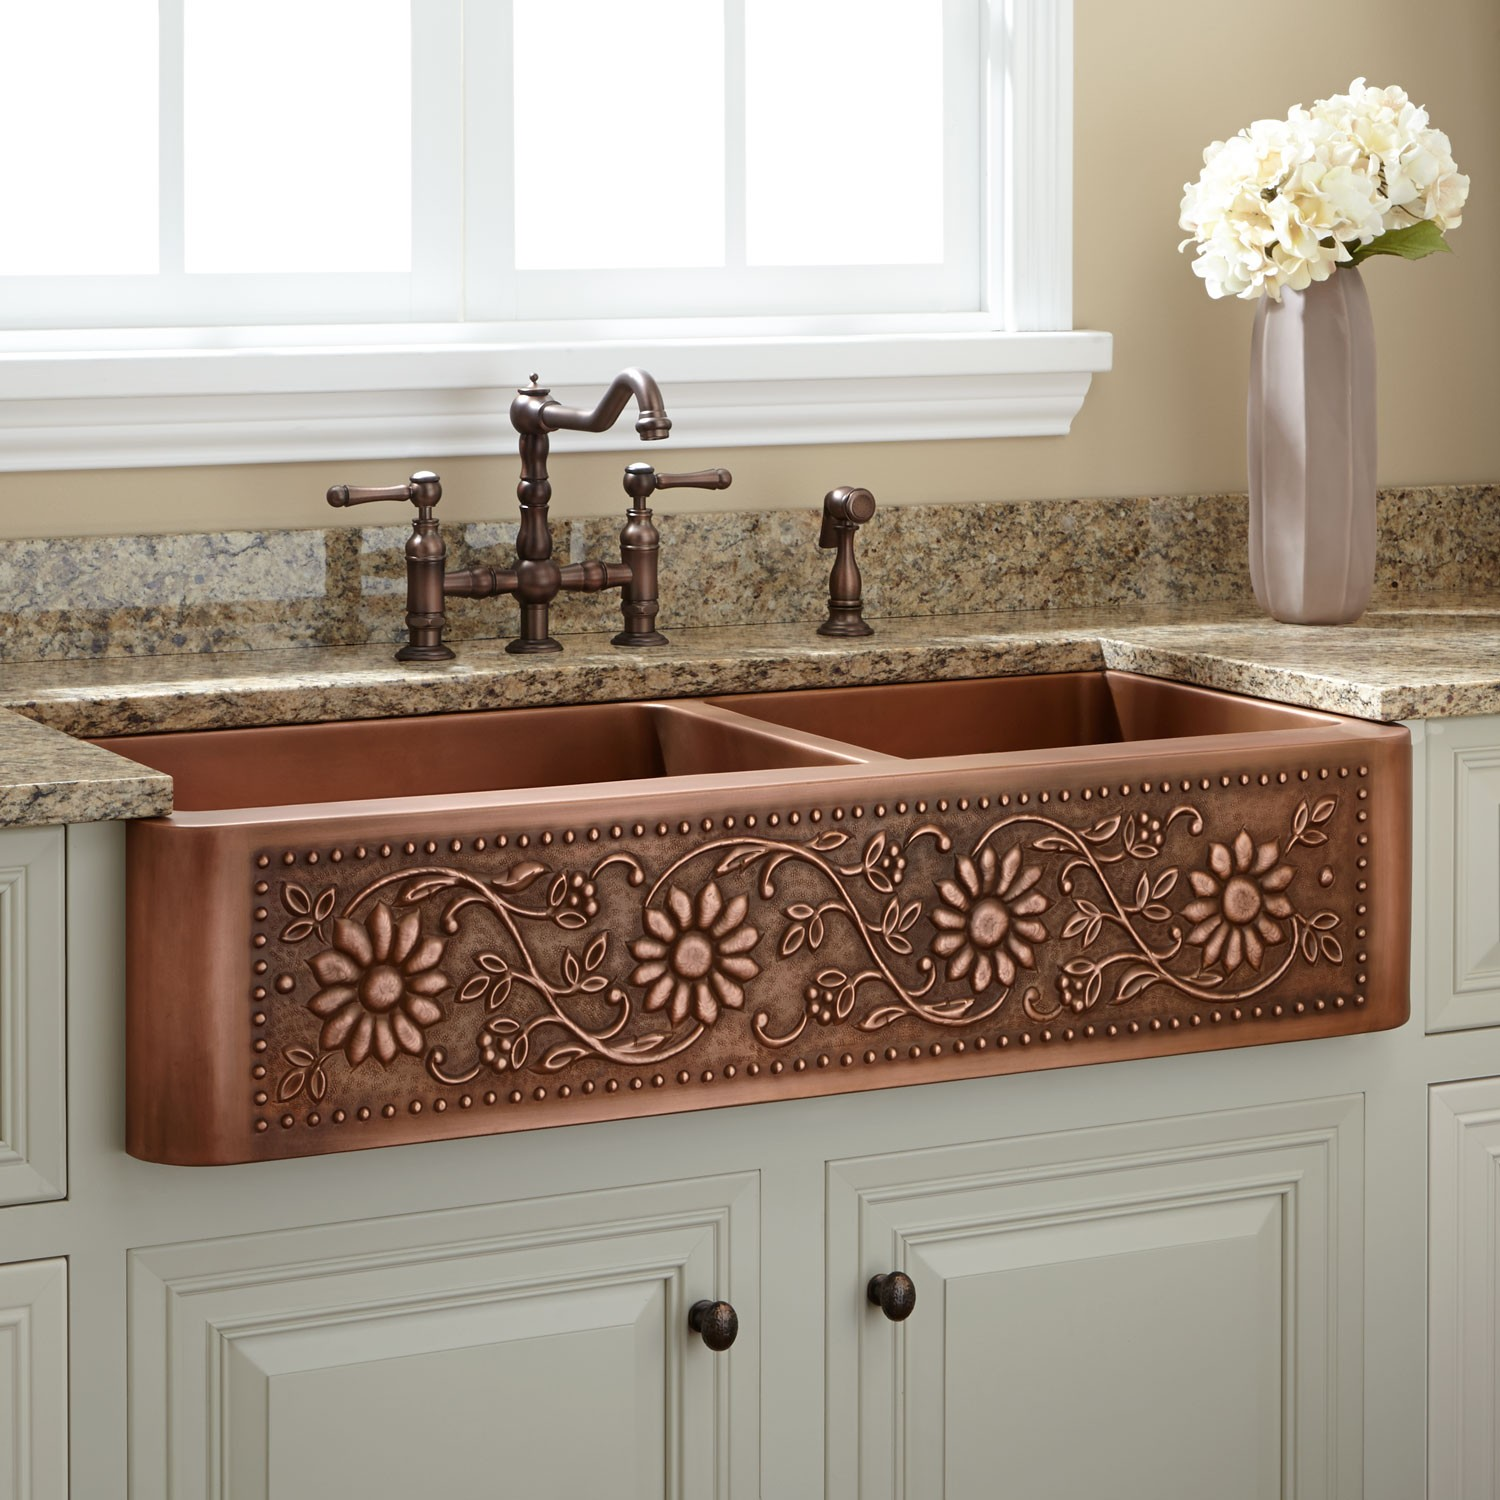 Kitchen Sink. 378521 Copper Farmhouse Kitchen. 361769 L Double.